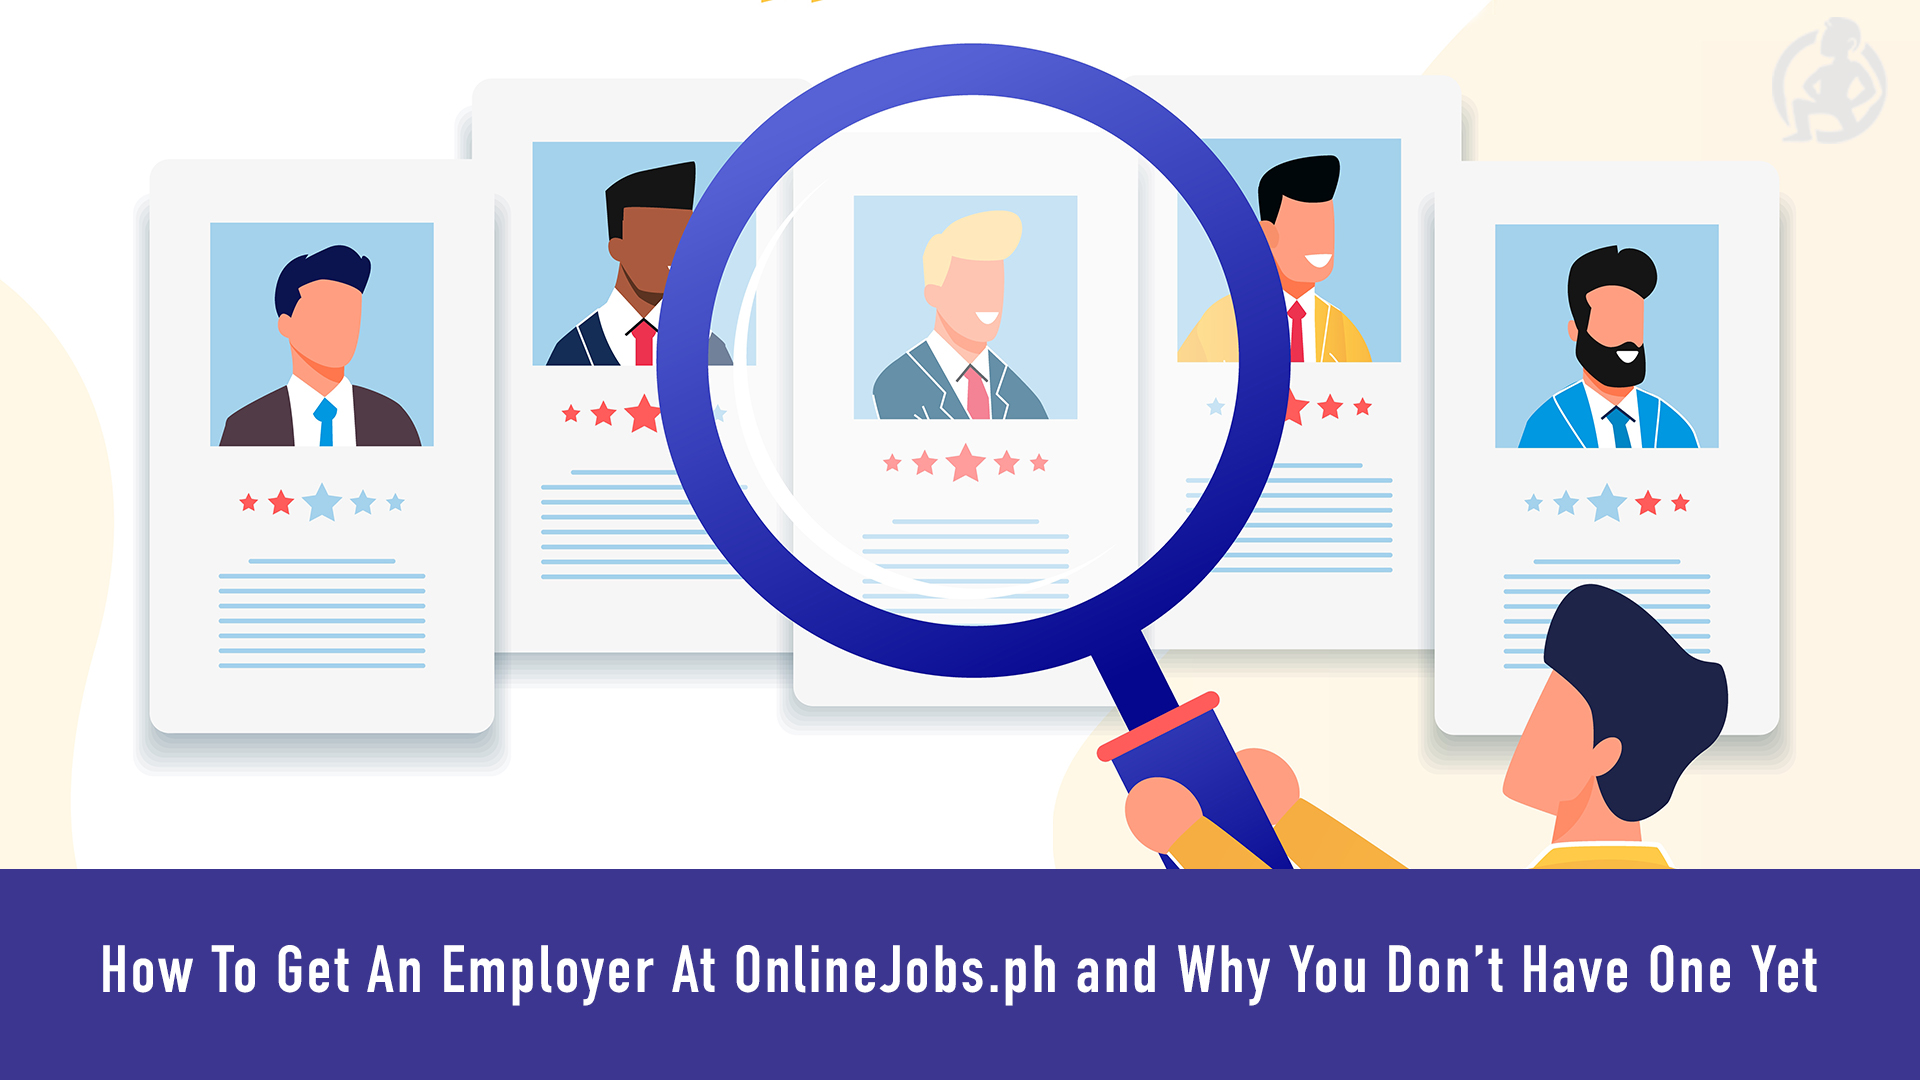 How To Get An Employer At OnlineJobs.ph and Why You Don't Have One Yet